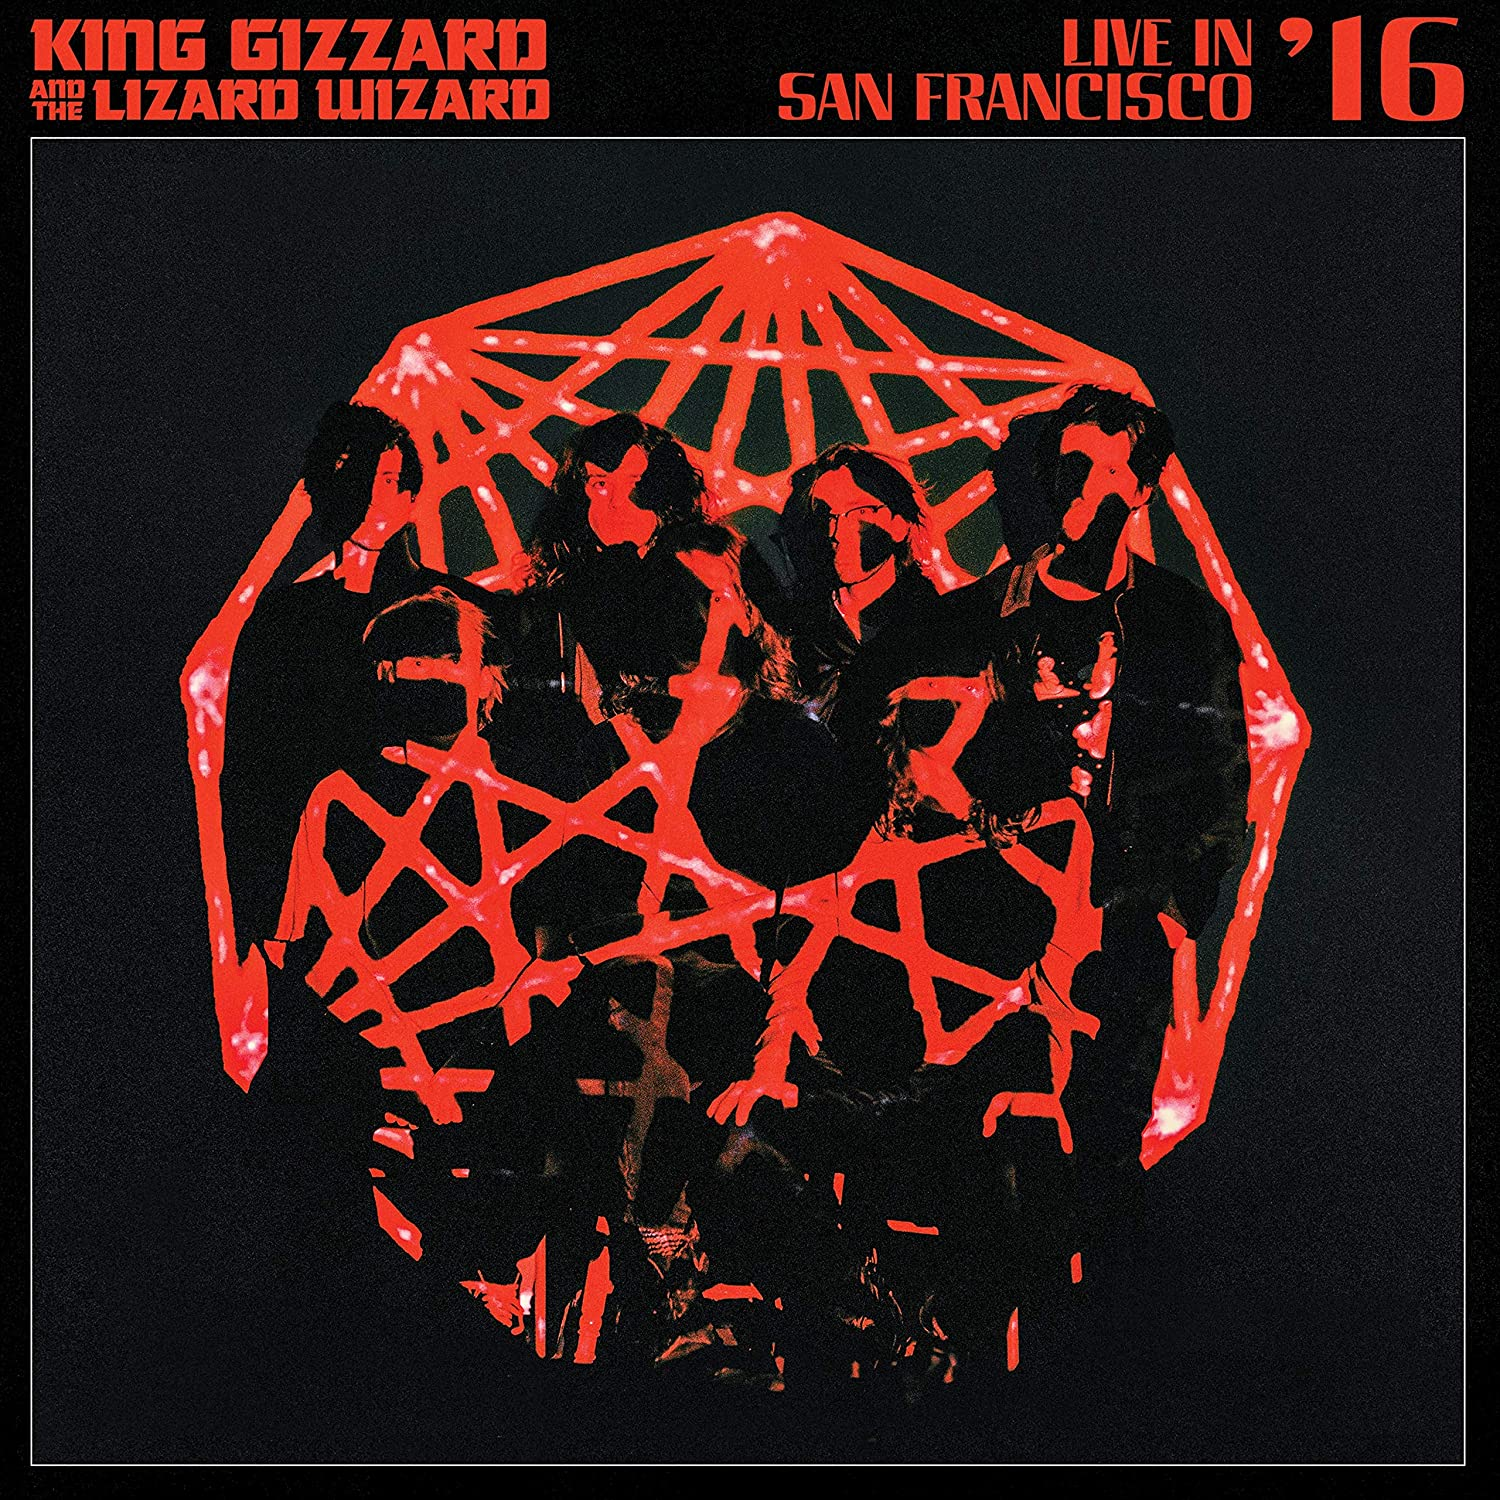 King Gizzard & The Lizard Wizard - Live In San Francisco '16 [Deluxe Fog/Sunburst 2LP]